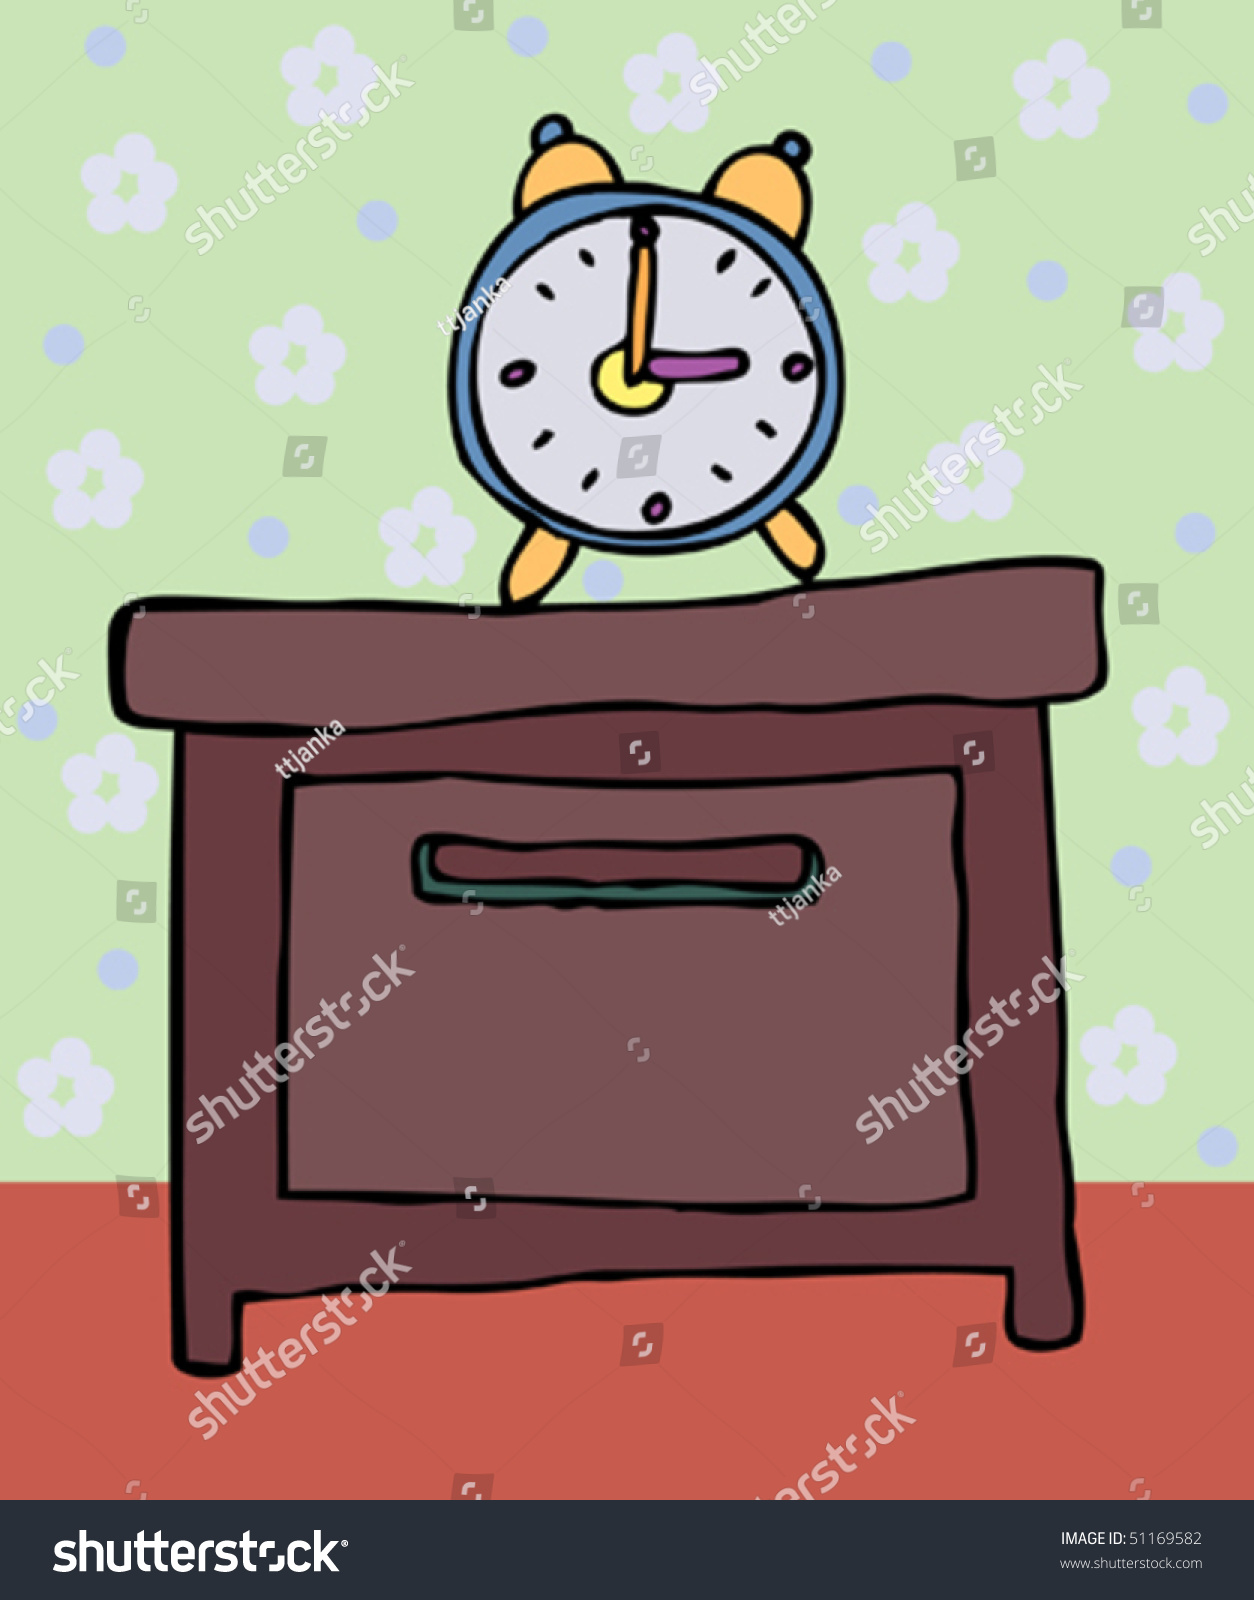 Bedside table clipart  Alarm Clock Stands On Bedside Table Stock Vector 51169582 ...